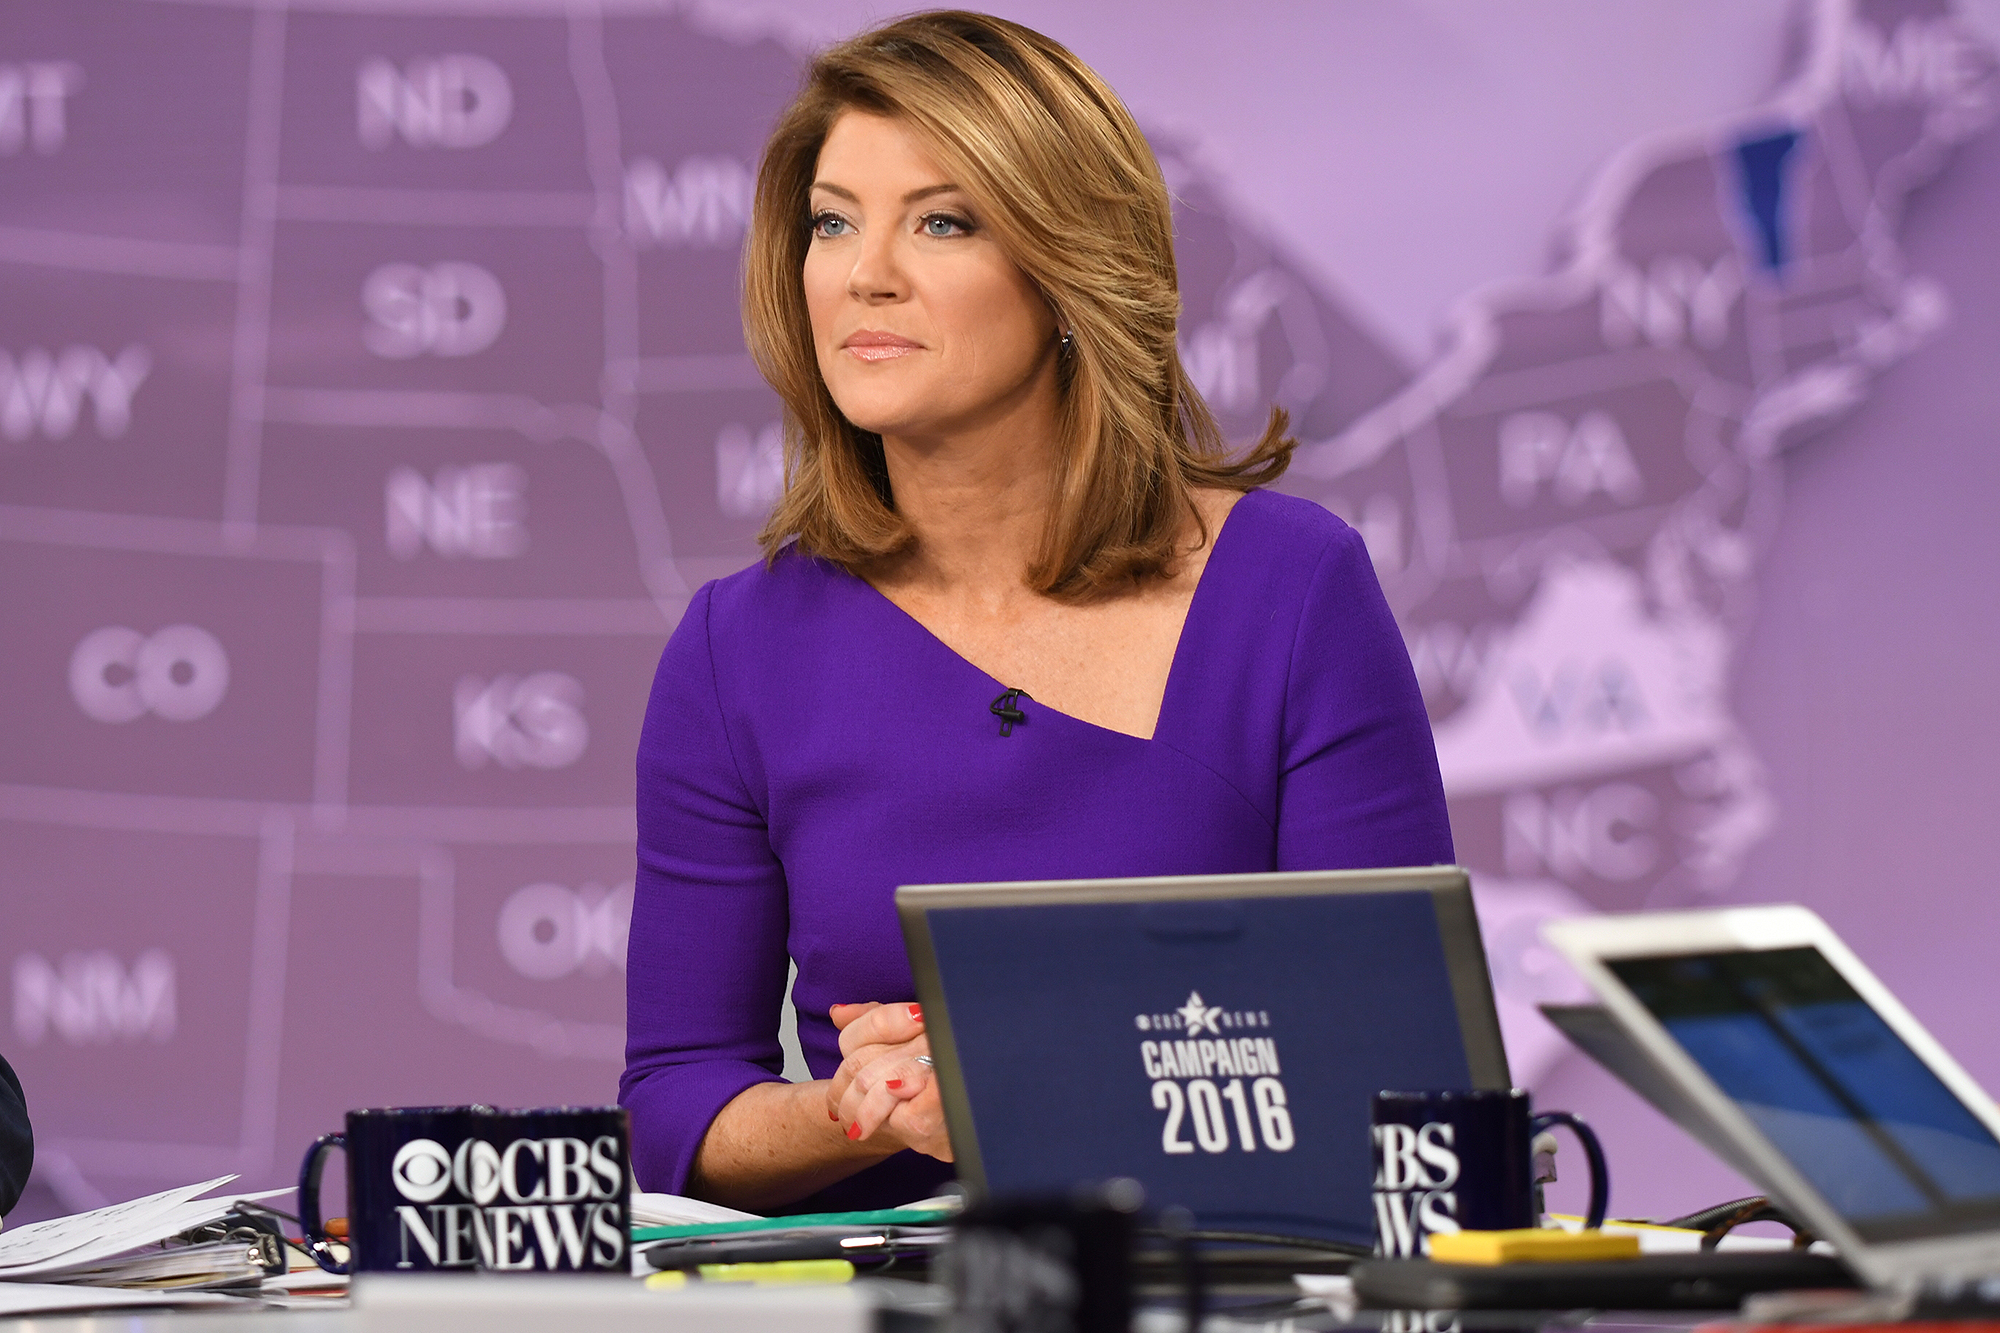 CBS' Norah O'Donnell Reveals She Was 'Distraught' After Being Diagnosed with Skin Cancer: 'It Was Really a Wake Up Call'